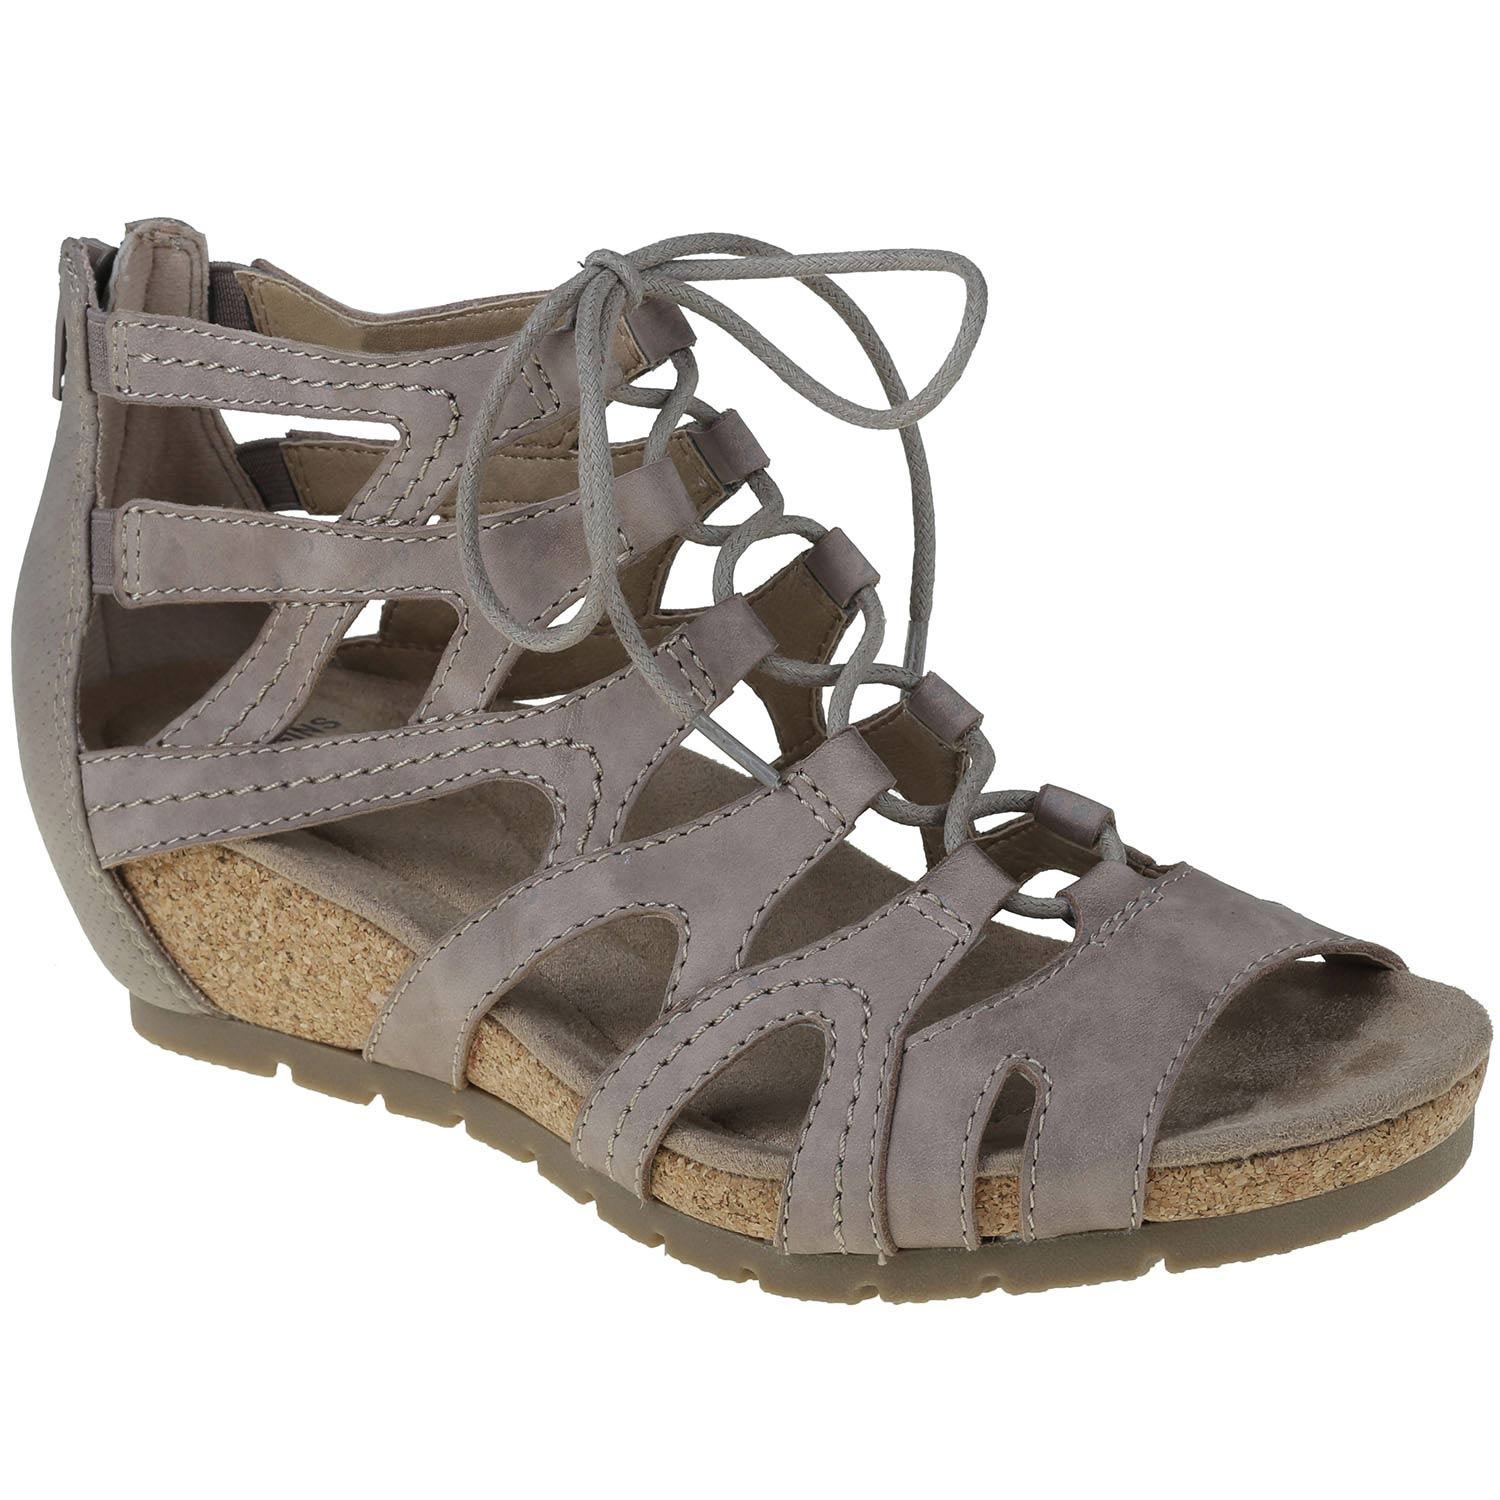 The wedge bootie sandal crafted for amazing customizable fit, great looks and lightweight comfort that keeps you smiling. Enjoy the Earth Origins Kamilla.